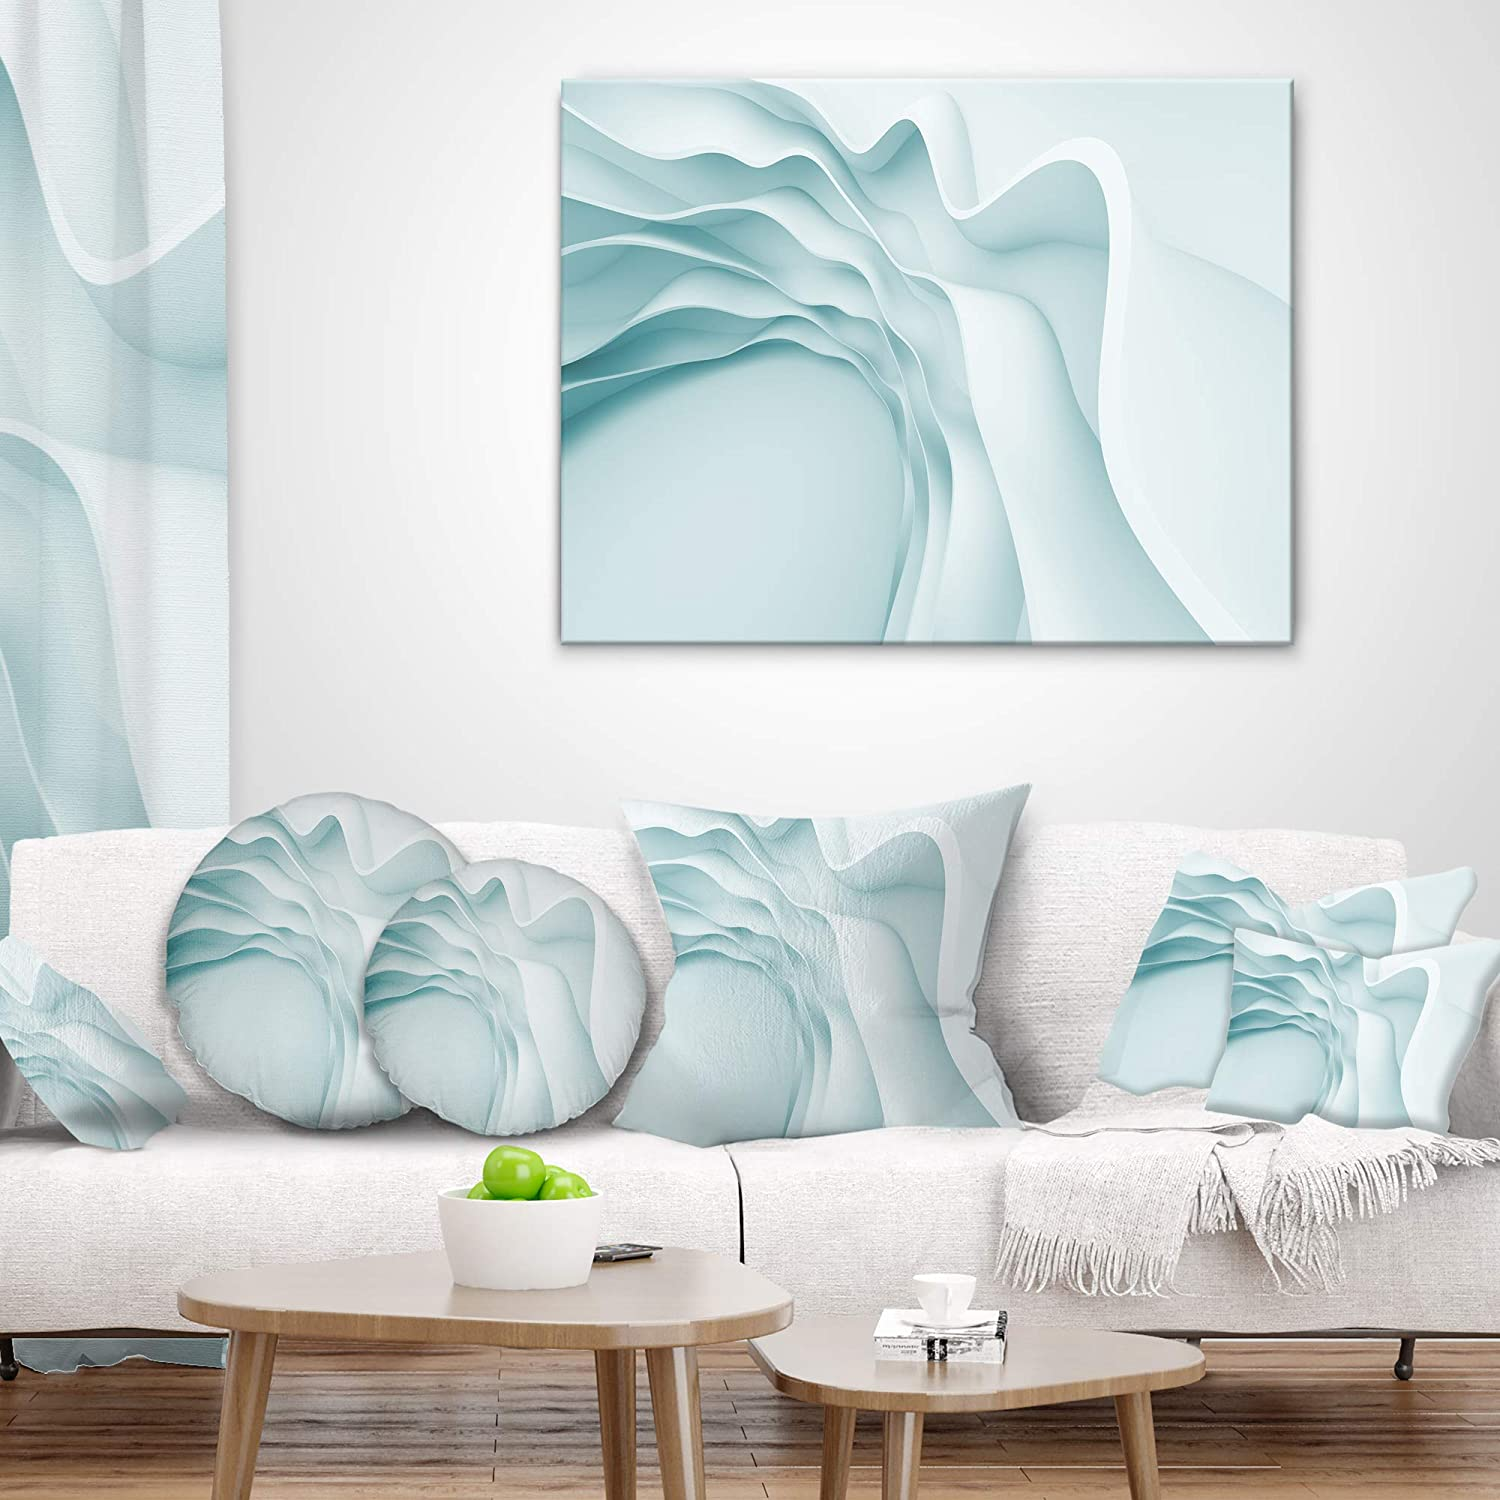 Designart CU9367-16-16-C Fractal Large Blue 3D Waves Contemporary Round Cushion Cover for Living Room Insert Printed On Both Side Sofa Throw Pillow 16